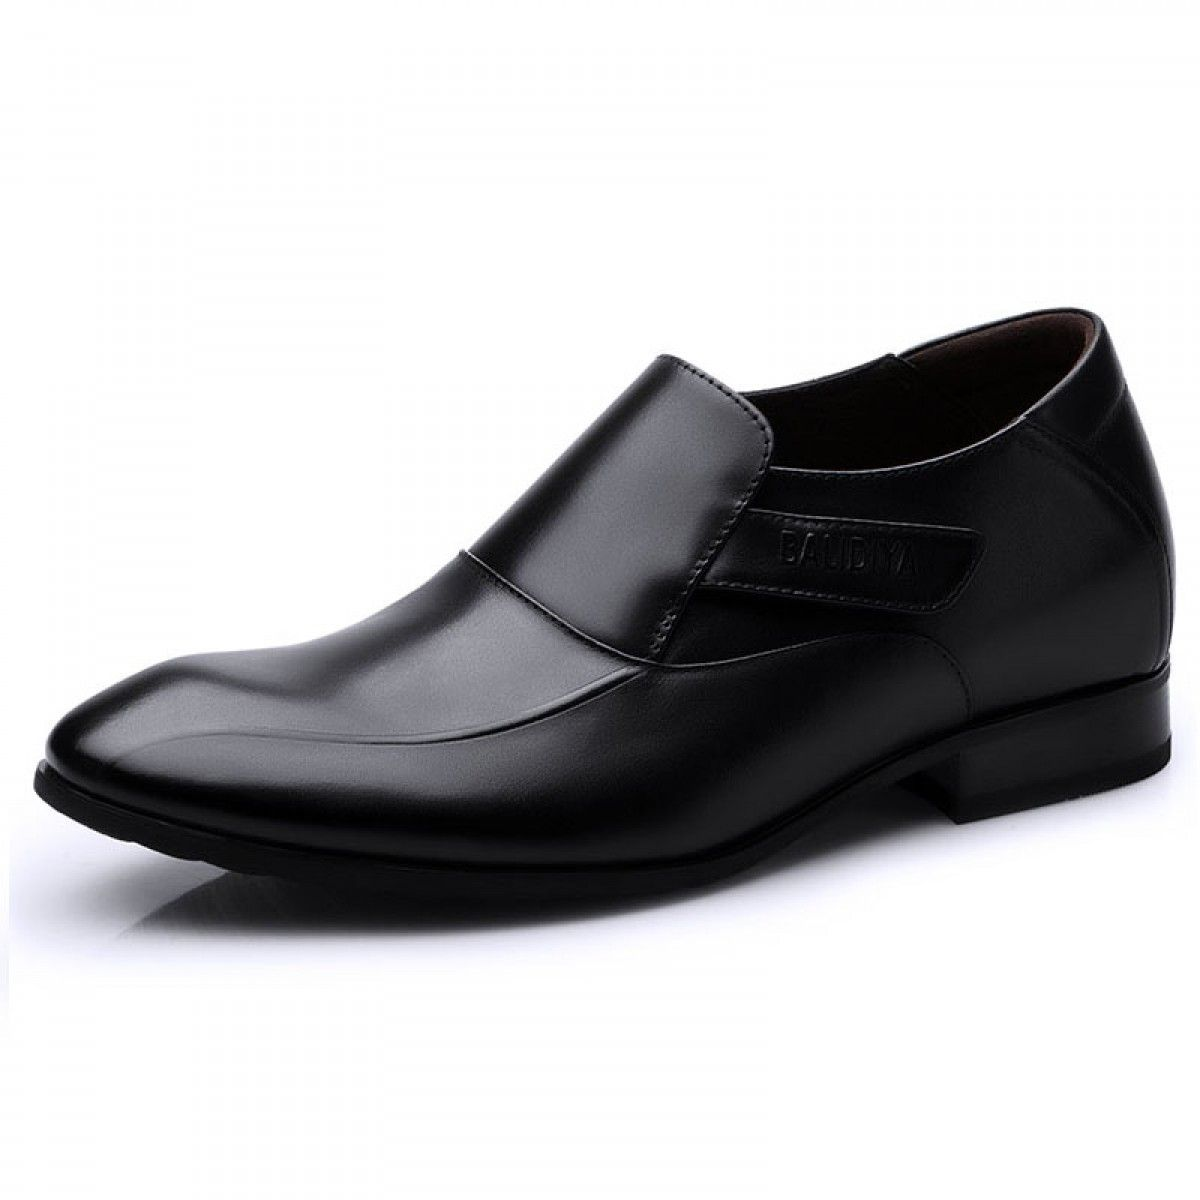 2.36 inches height Increasing Elevator Shoes Formal Slip On Loafers Leather